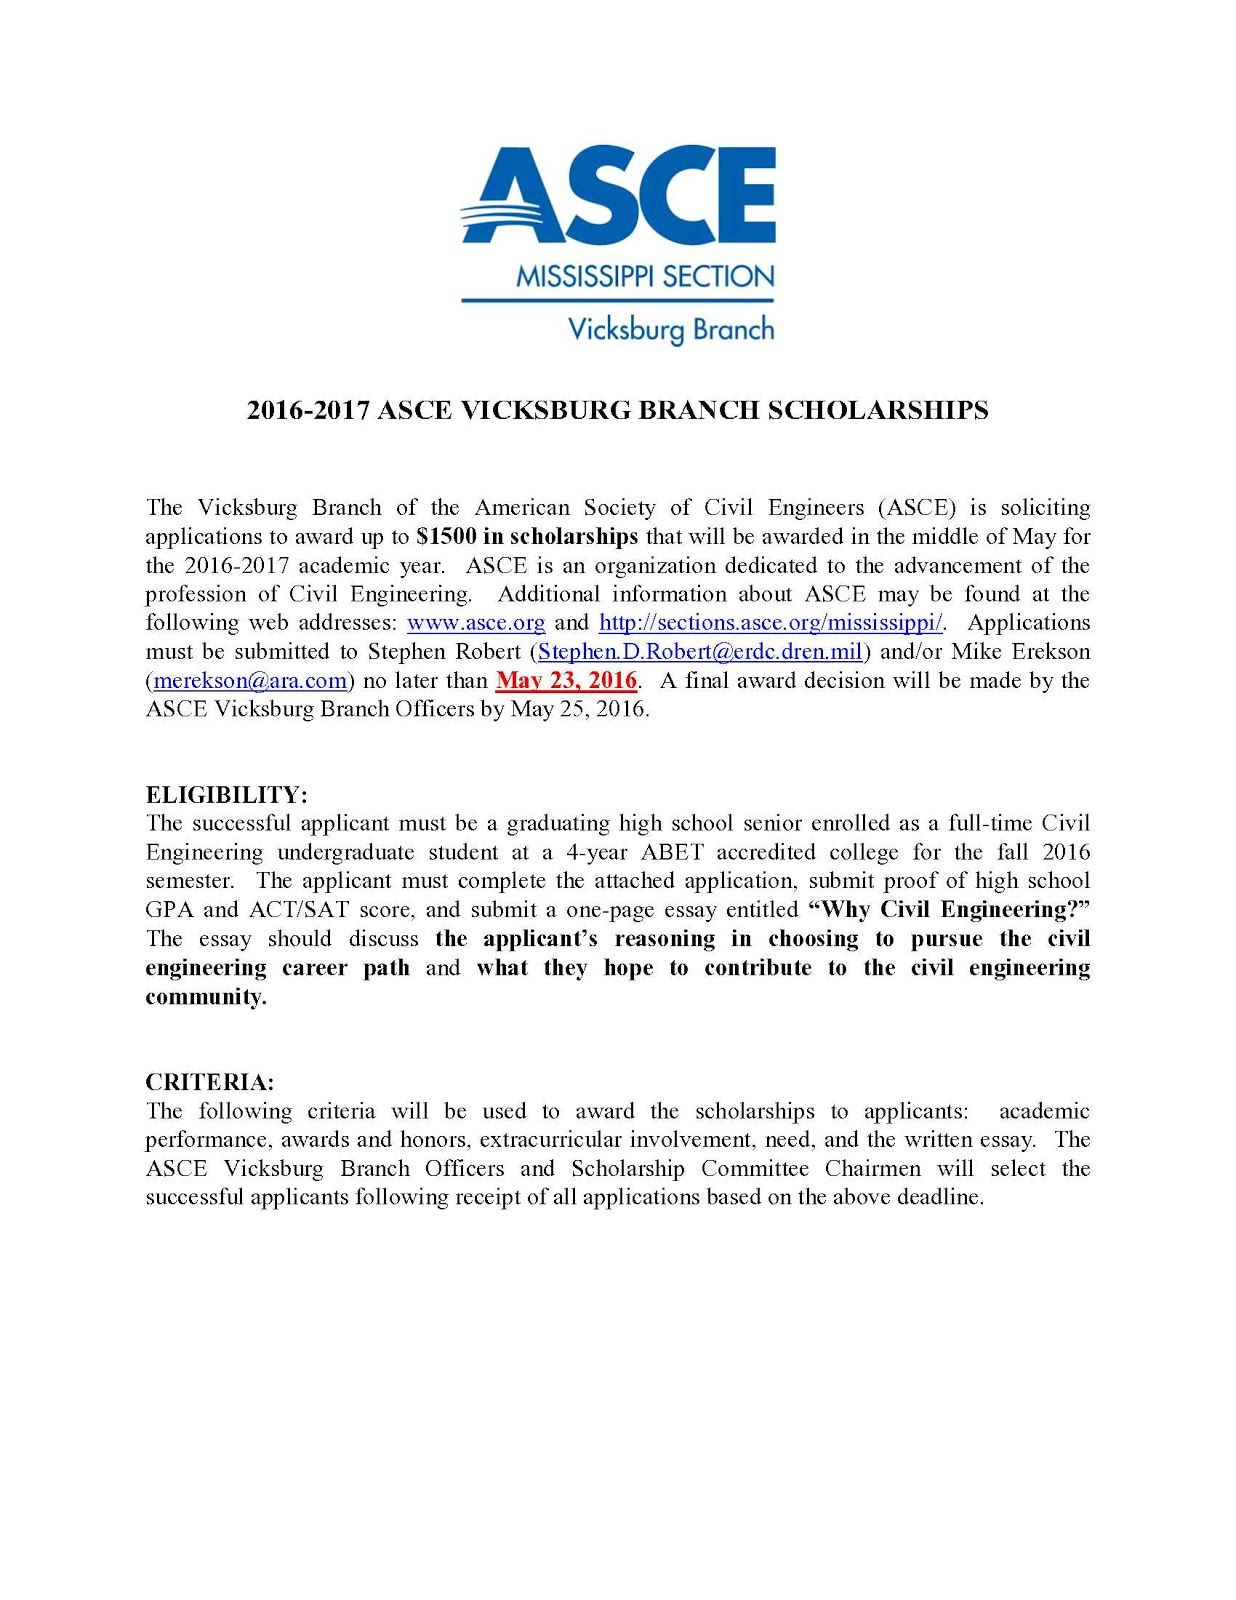 Vhs news asce scholarship deadline changed to 5 23 16 for Table 6 3 asce 7 05